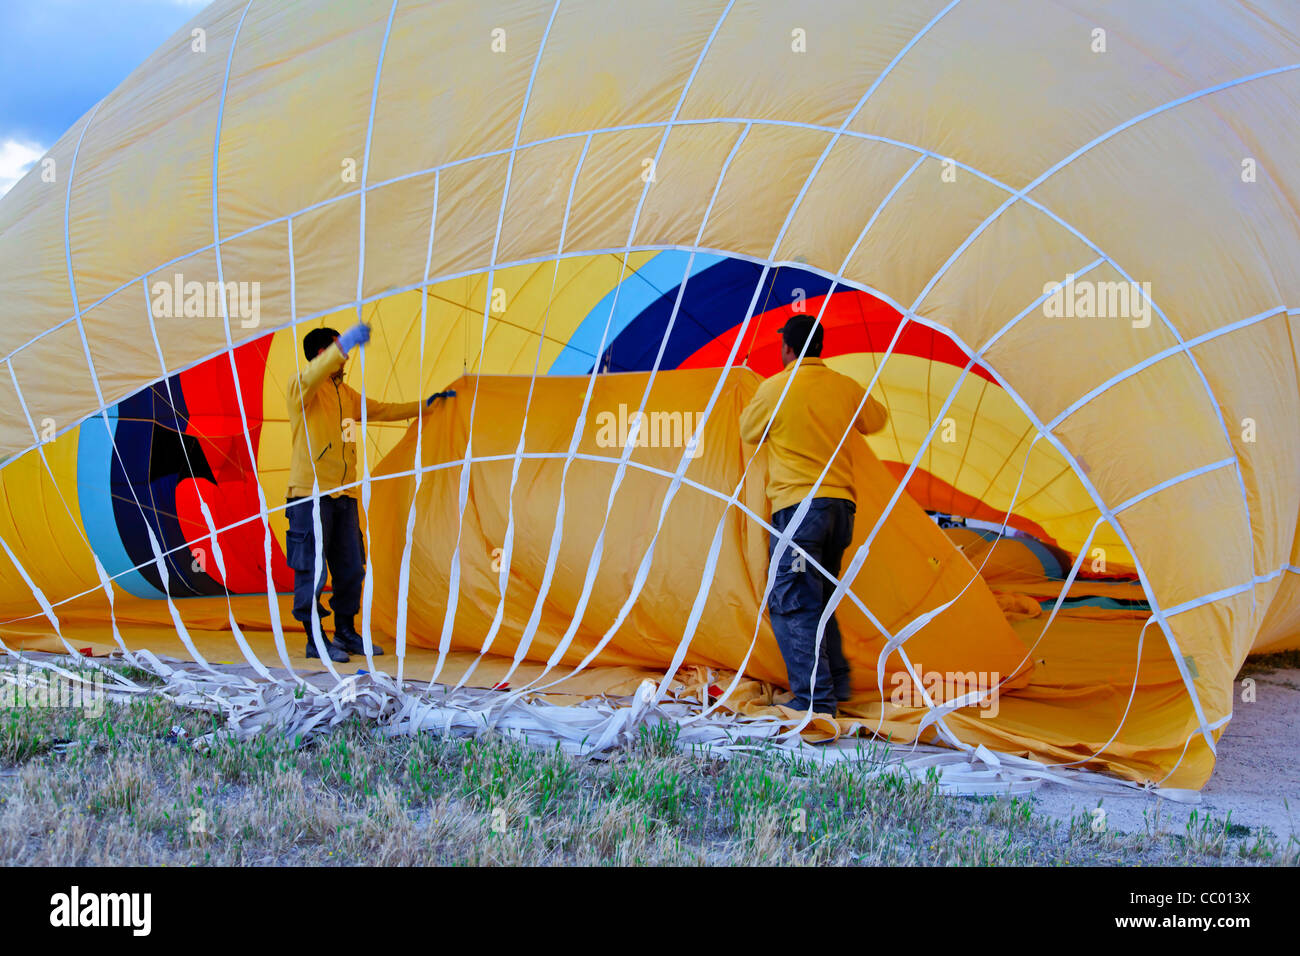 Roadies inside a yellow hot air balloon making ready for flight in Cappadocia Turkey, horizontal landscape with - Stock Image